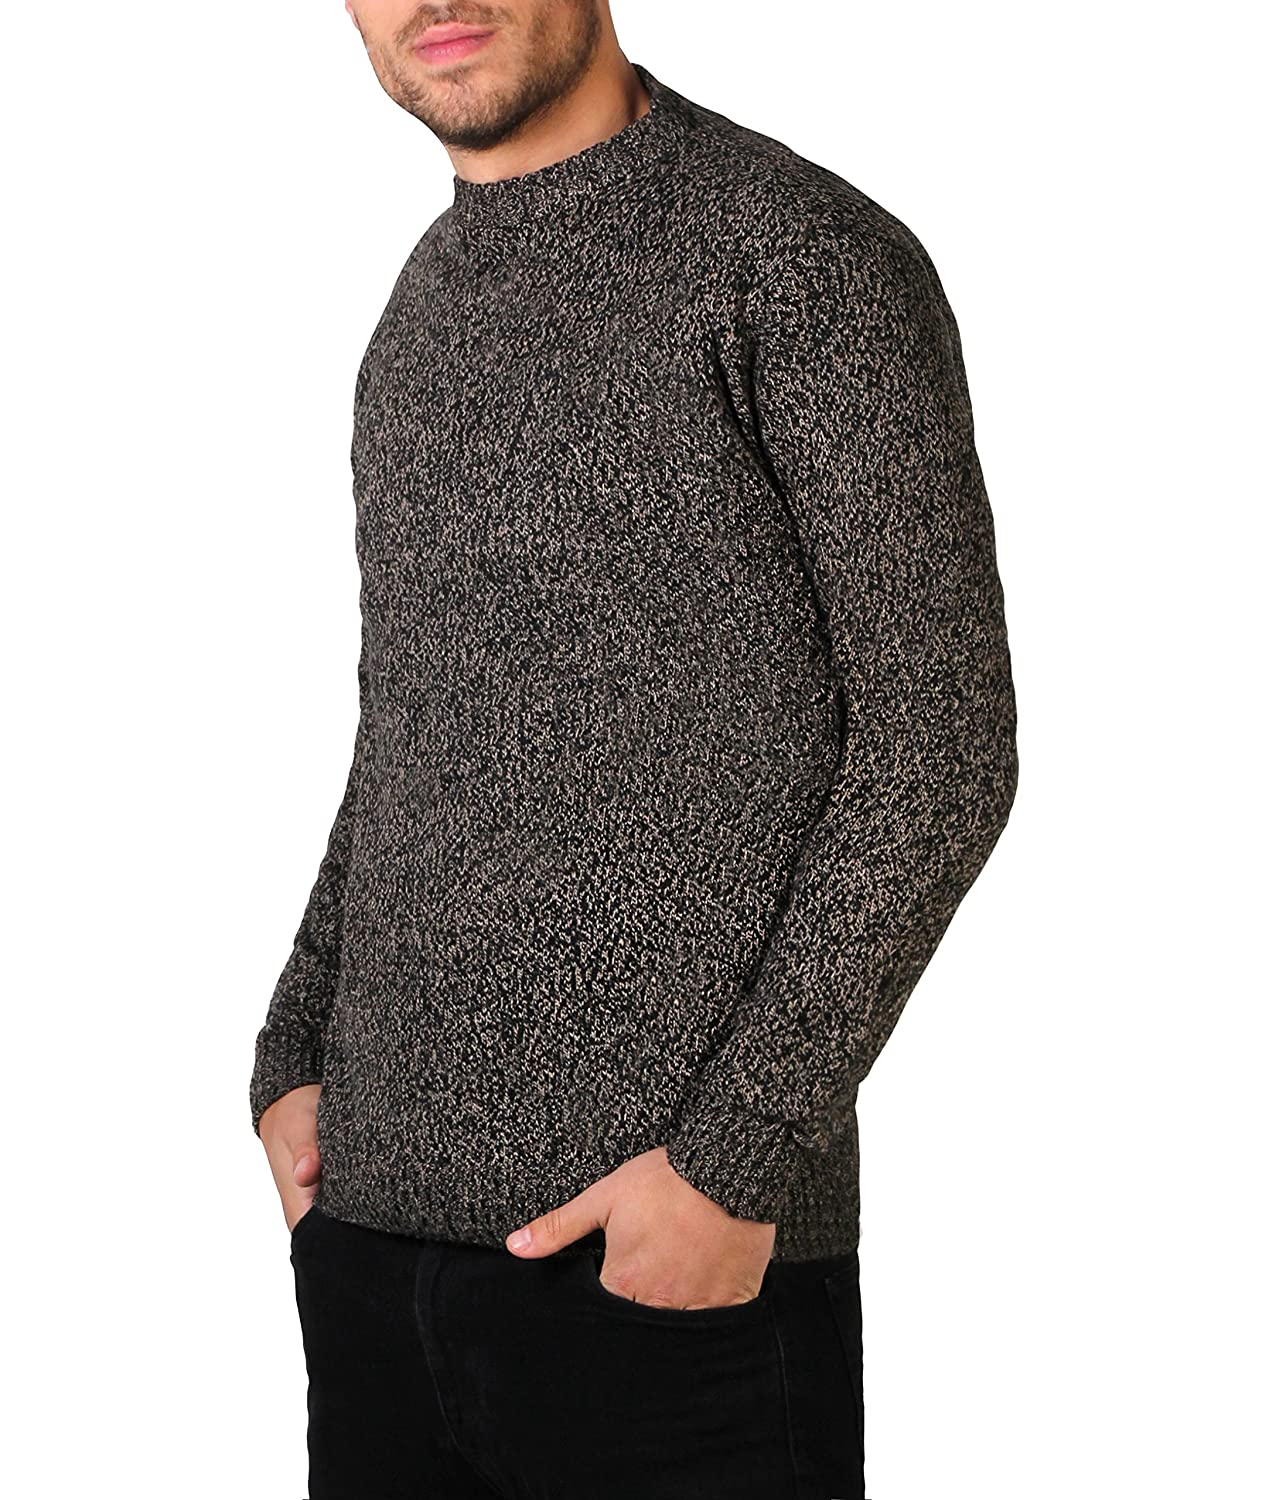 KRISP Mens Soft Wool Knitted Warm Sweater Grandad Pullover Round Crew Neck Top